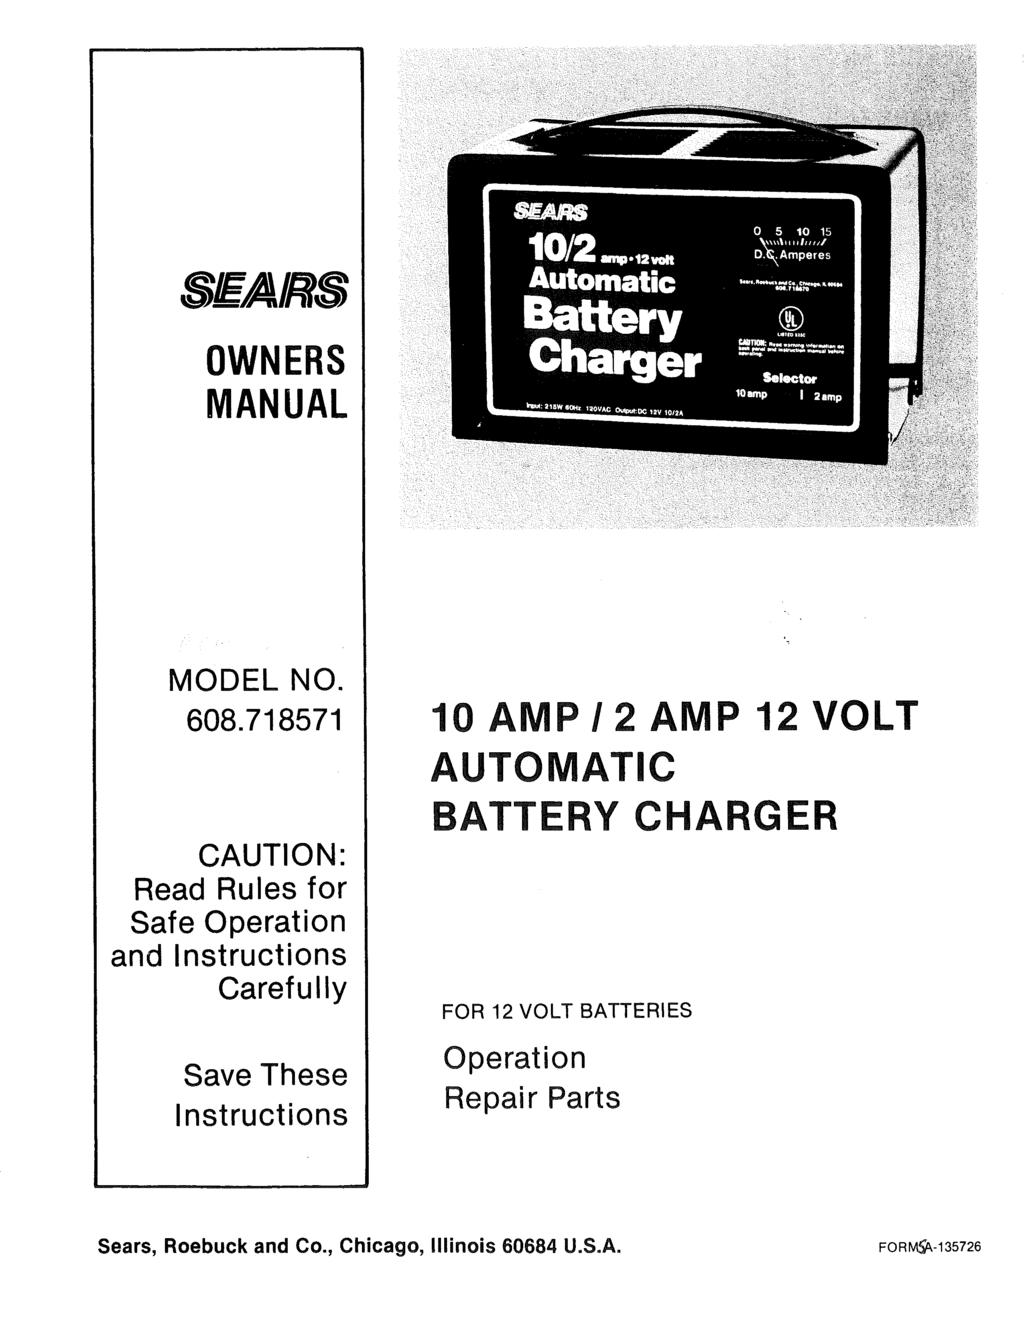 SEARS OWNERS MANUAL MODEL NO. 608.